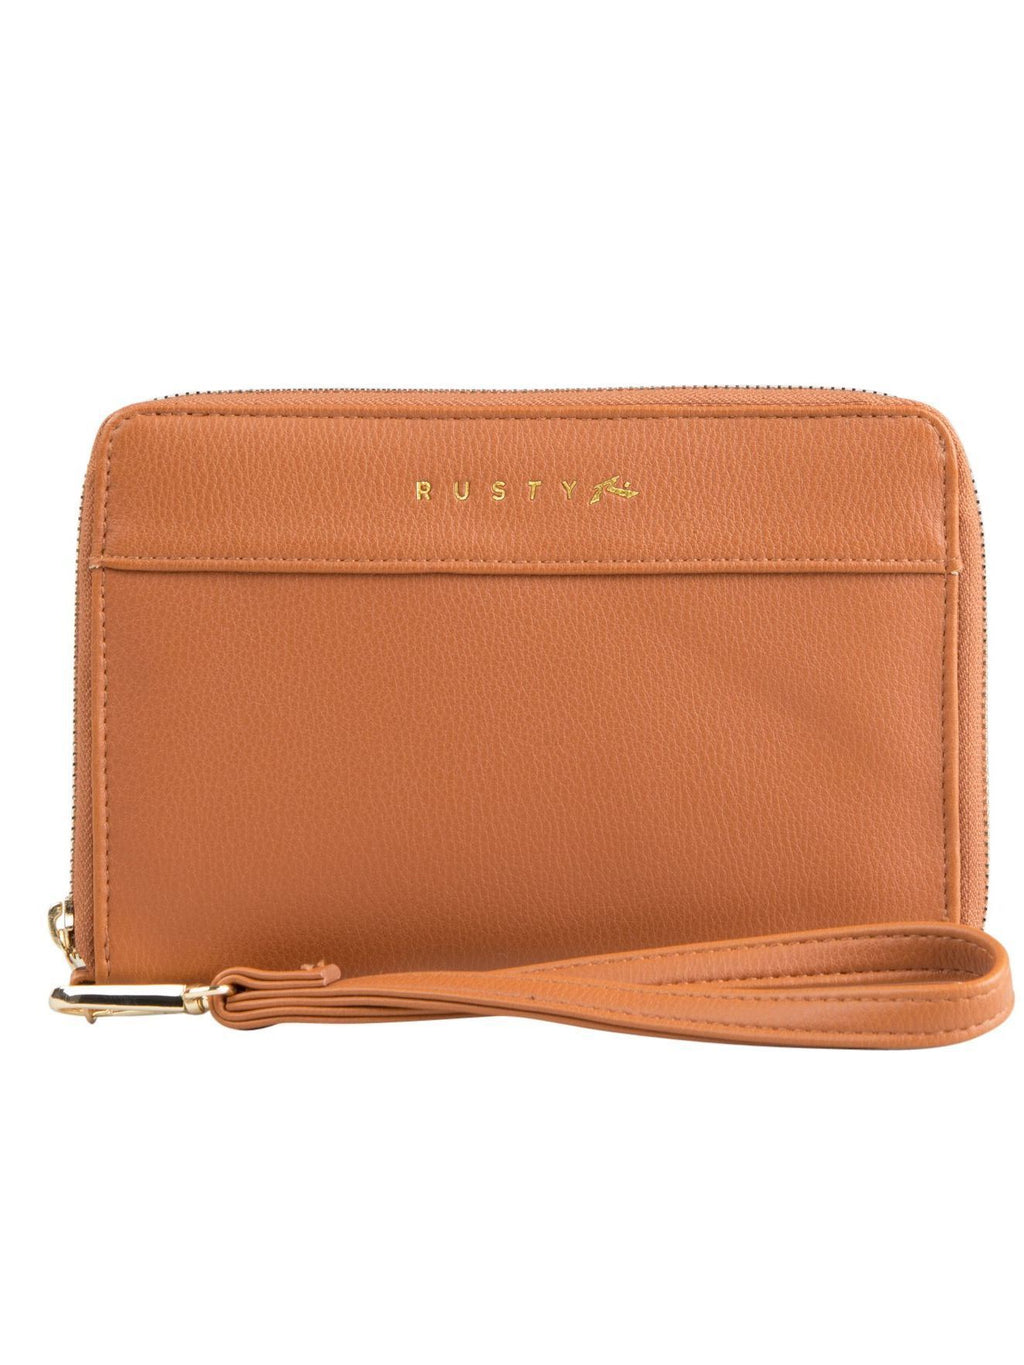 Revival Travel Wallet - Tan